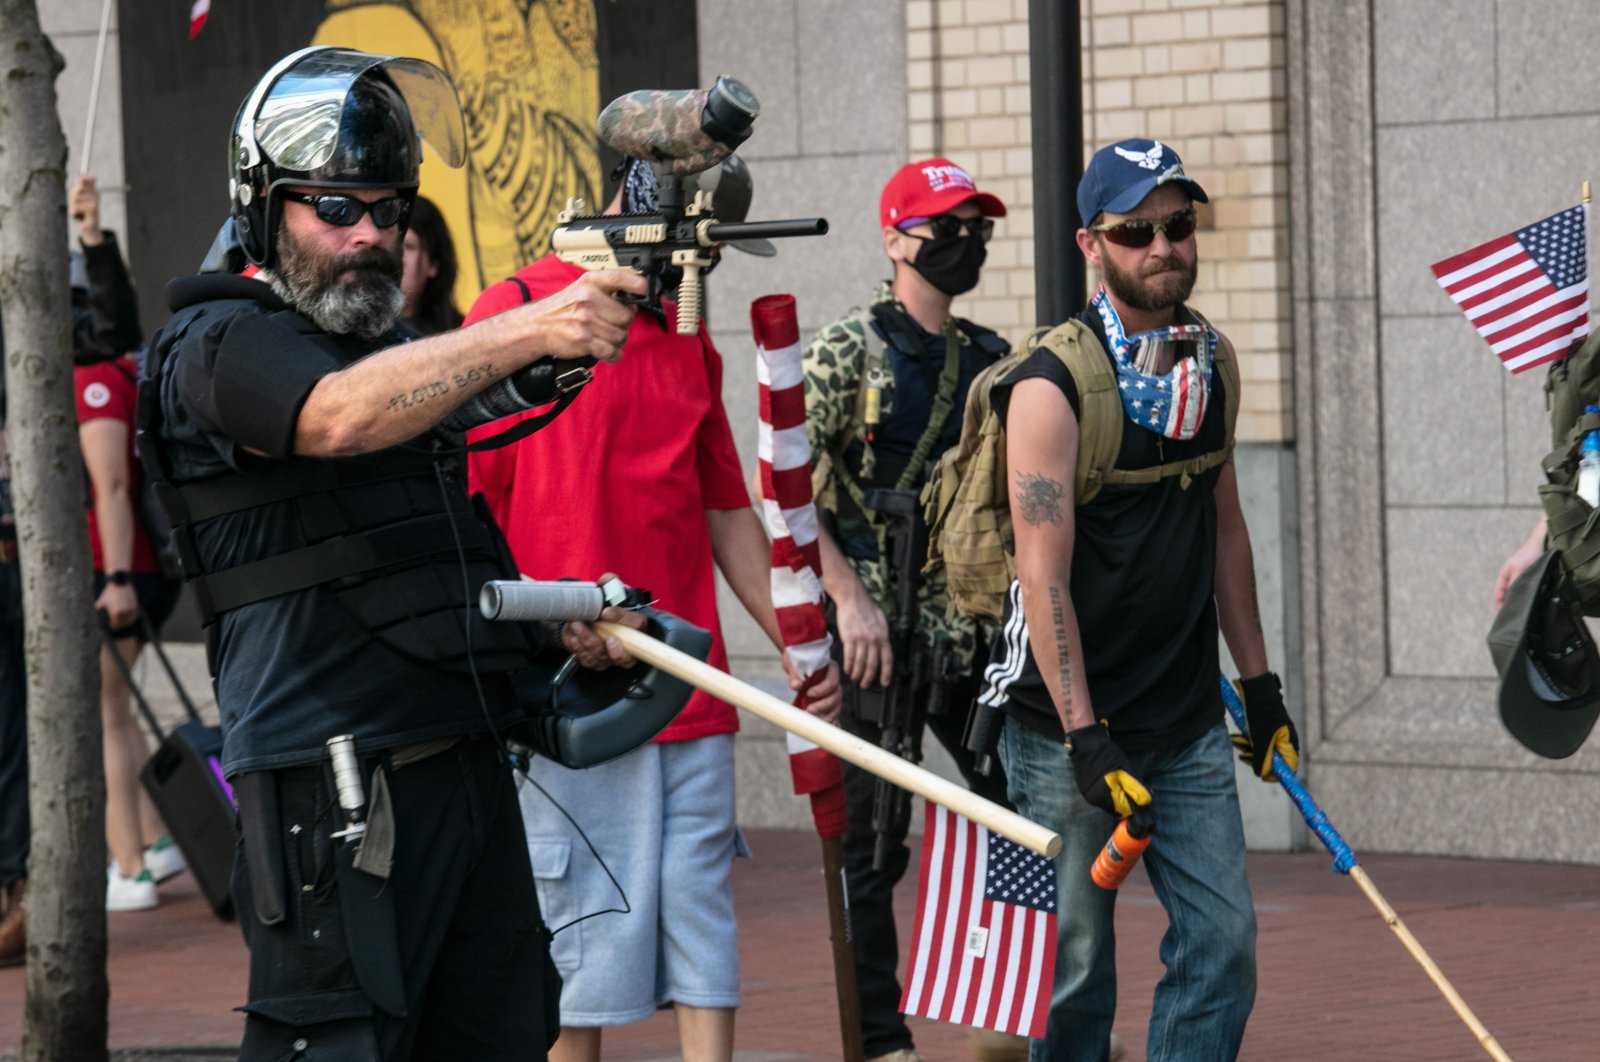 The Proud Boys face off against Black Lives Matter protesters using mace and a paintball gun, in downtown Portland, Oregon, U.S., Aug. 15, 2020. (Photo by Getty Images)